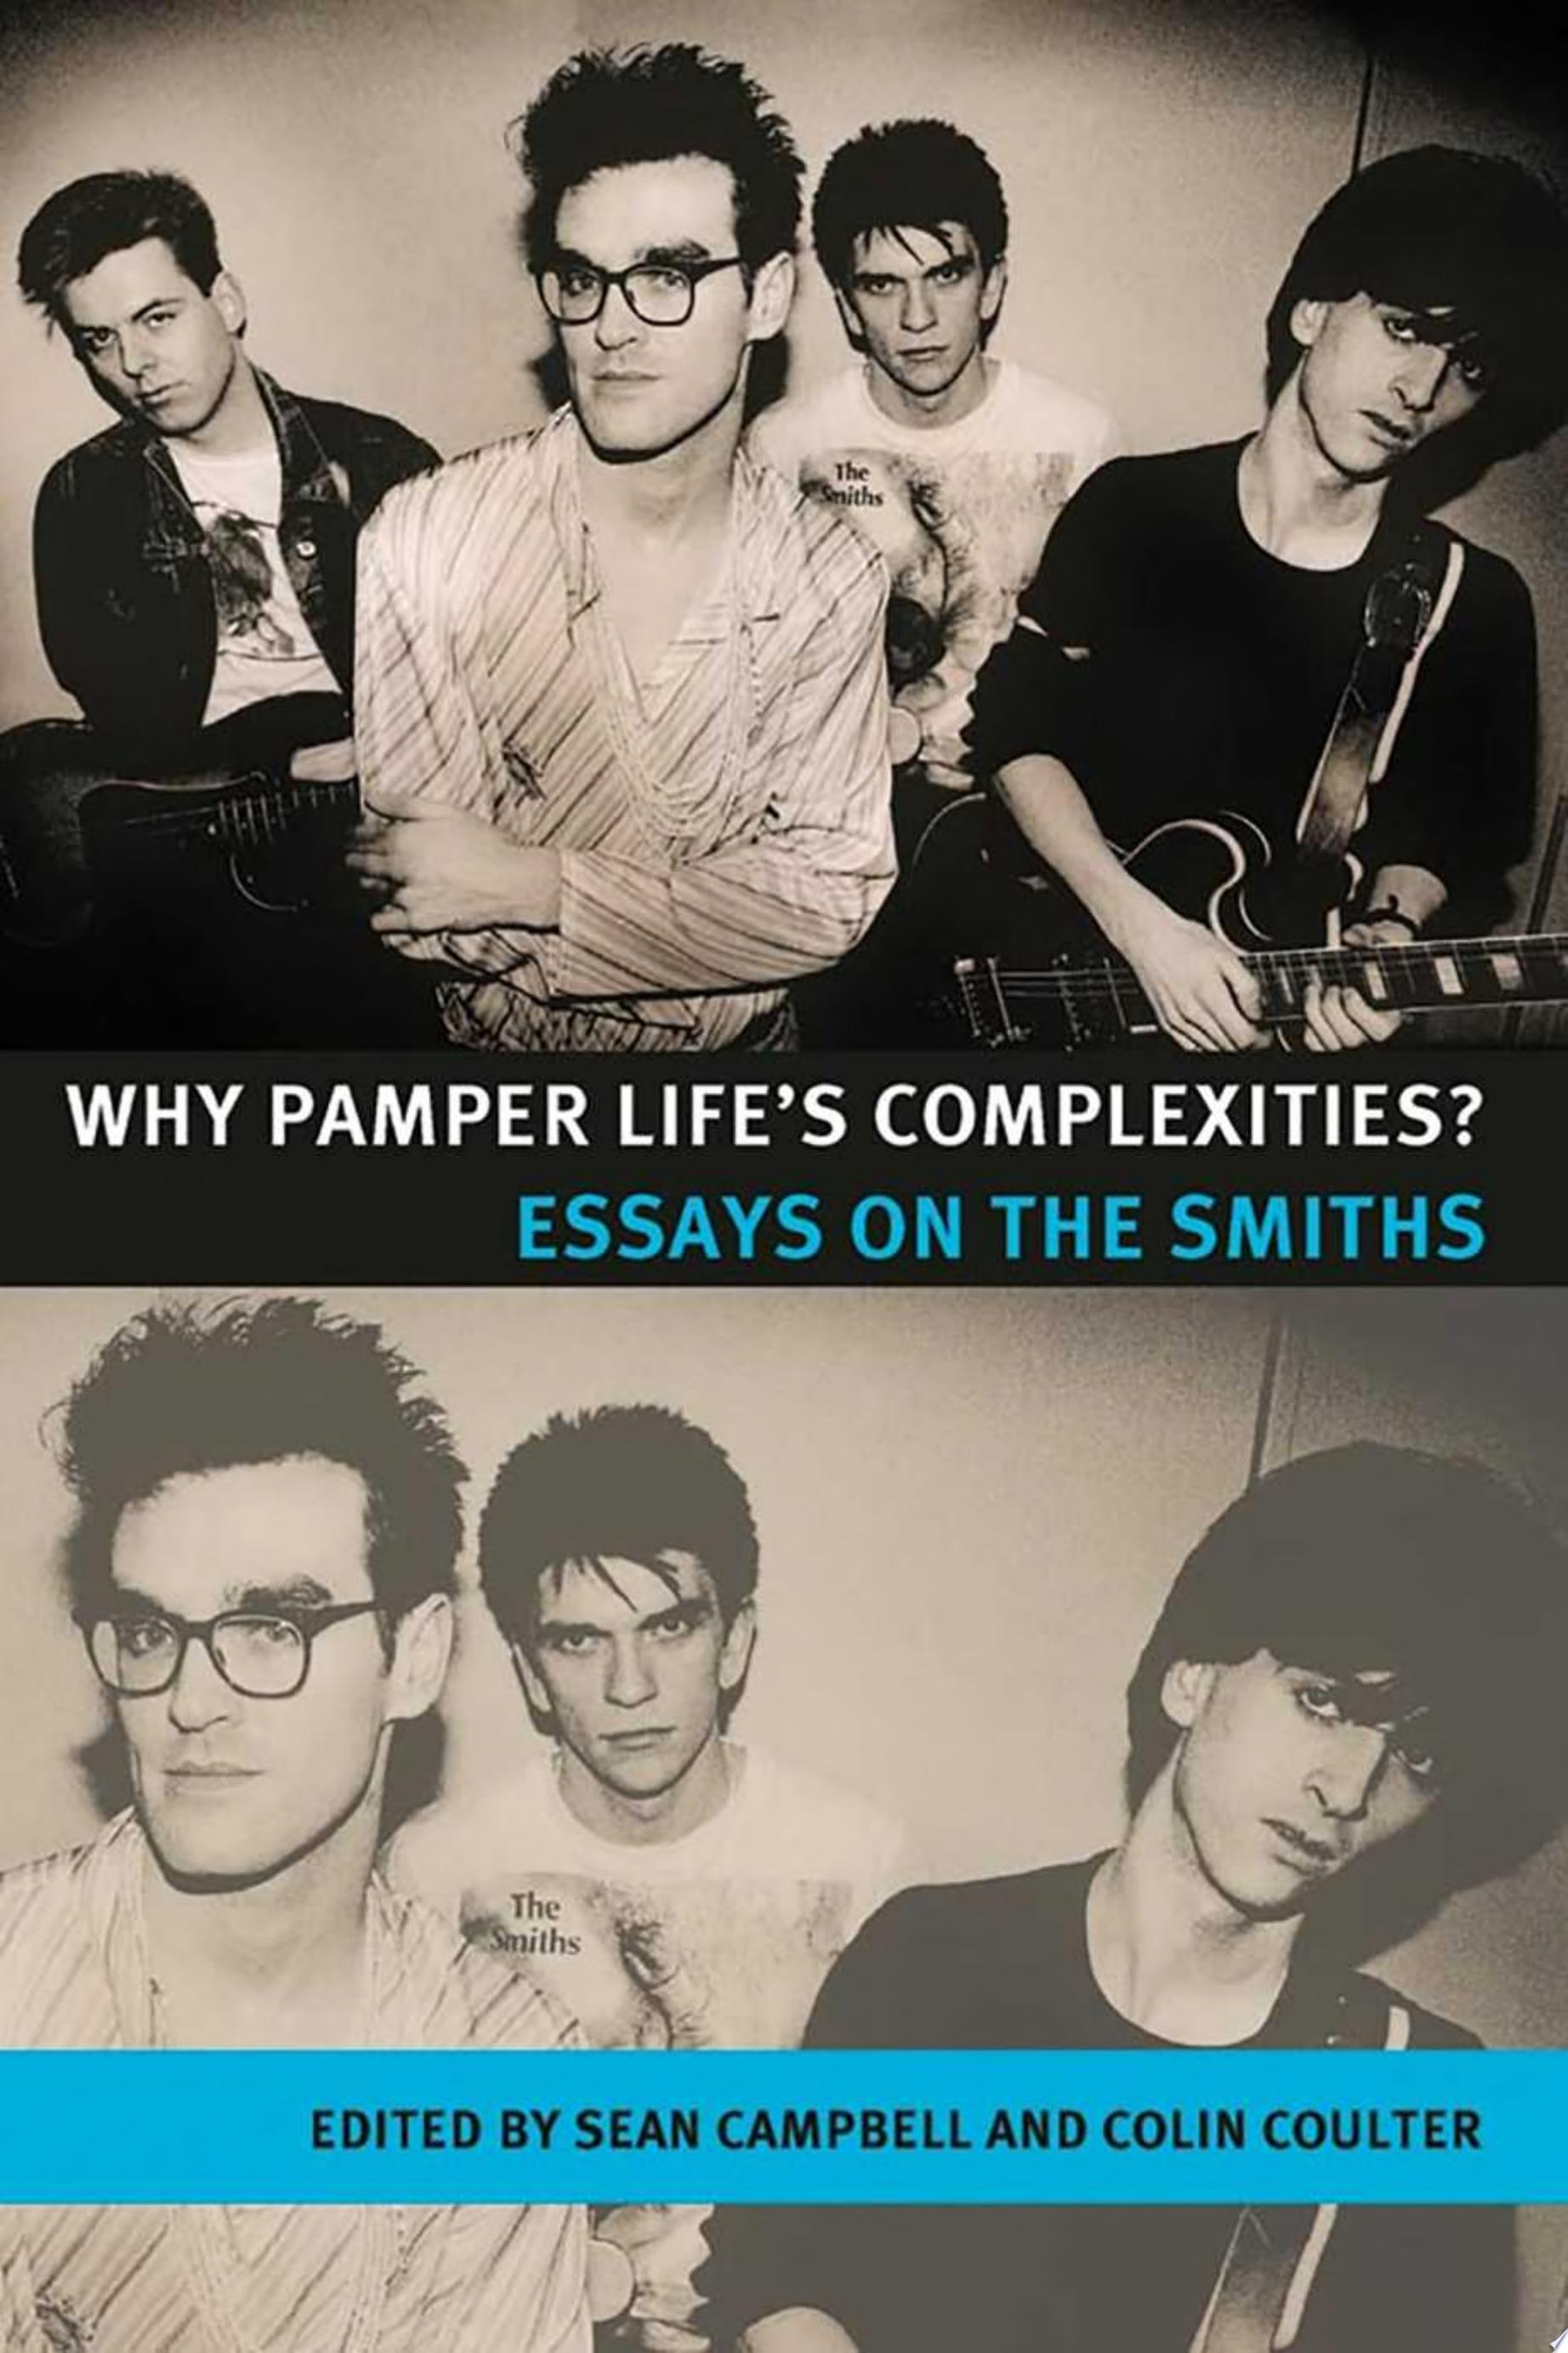 Why Pamper Lifes Complexities